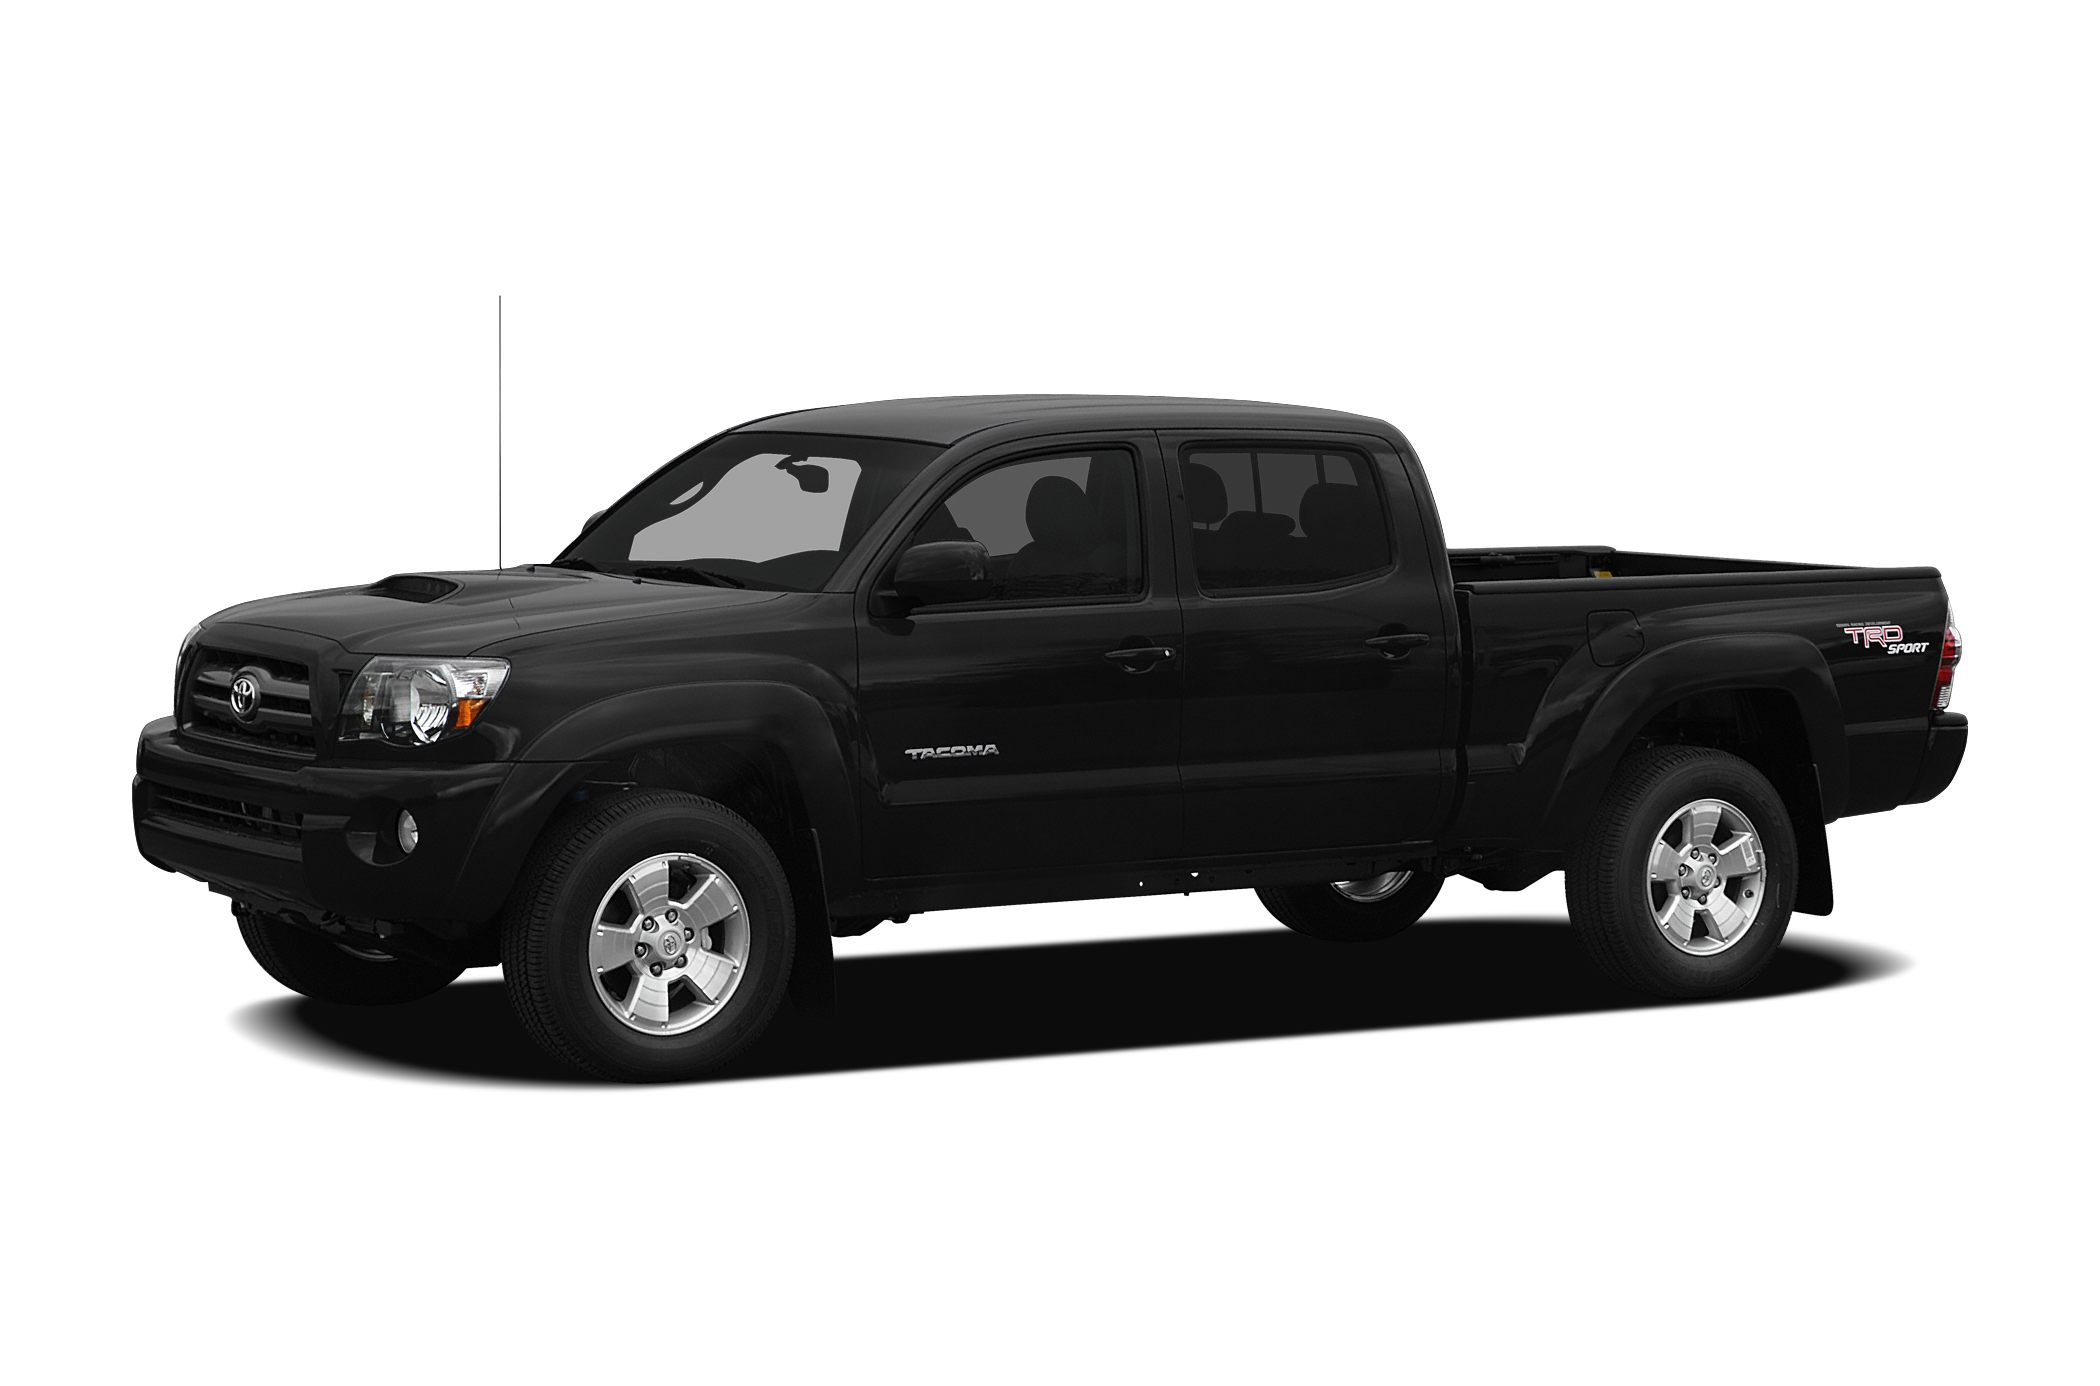 2009 Toyota Tacoma PreRunner Double Cab Crew Cab Pickup for sale in Decatur for $23,000 with 71,061 miles